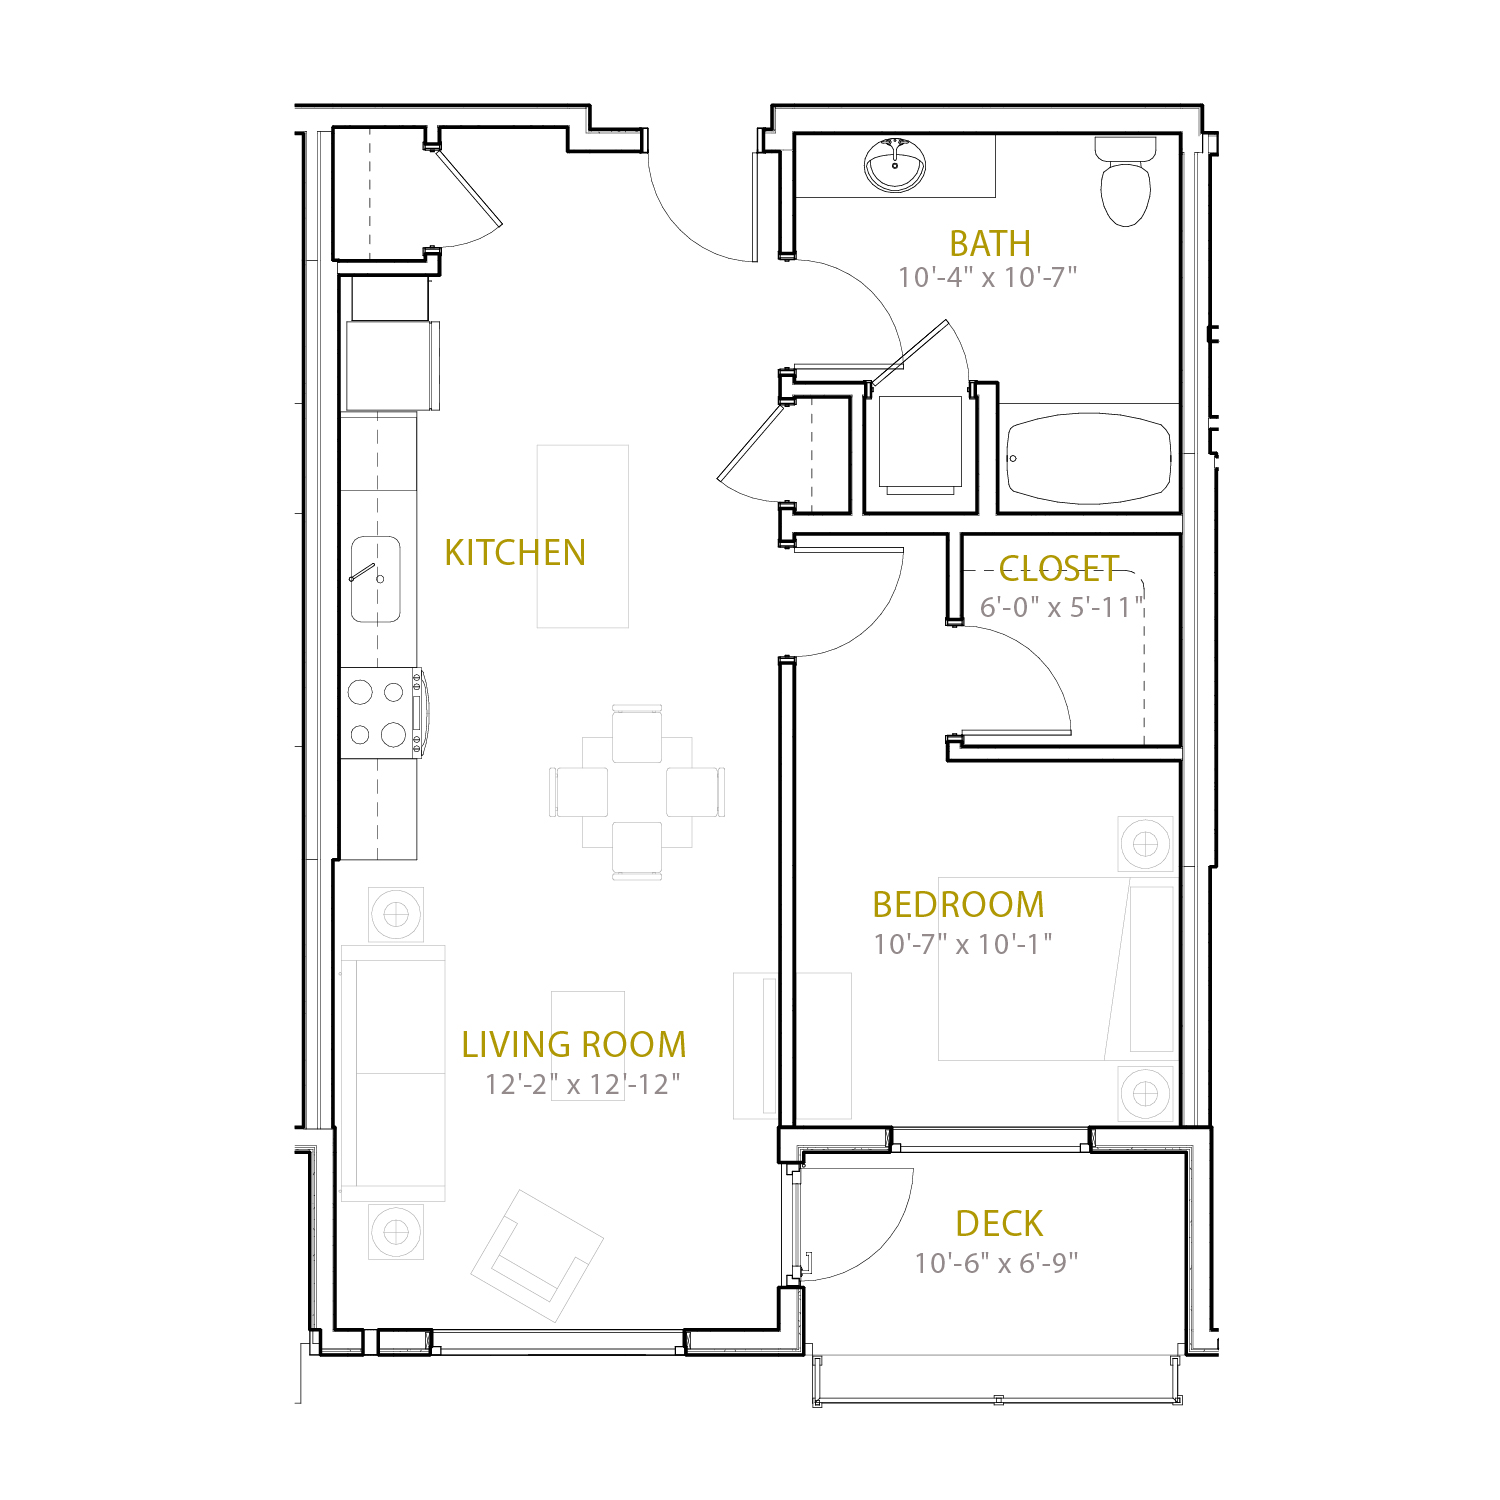 B Three A floor plan diagram. One bedroom, one bathroom, an open kitchen and living area, and a deck.